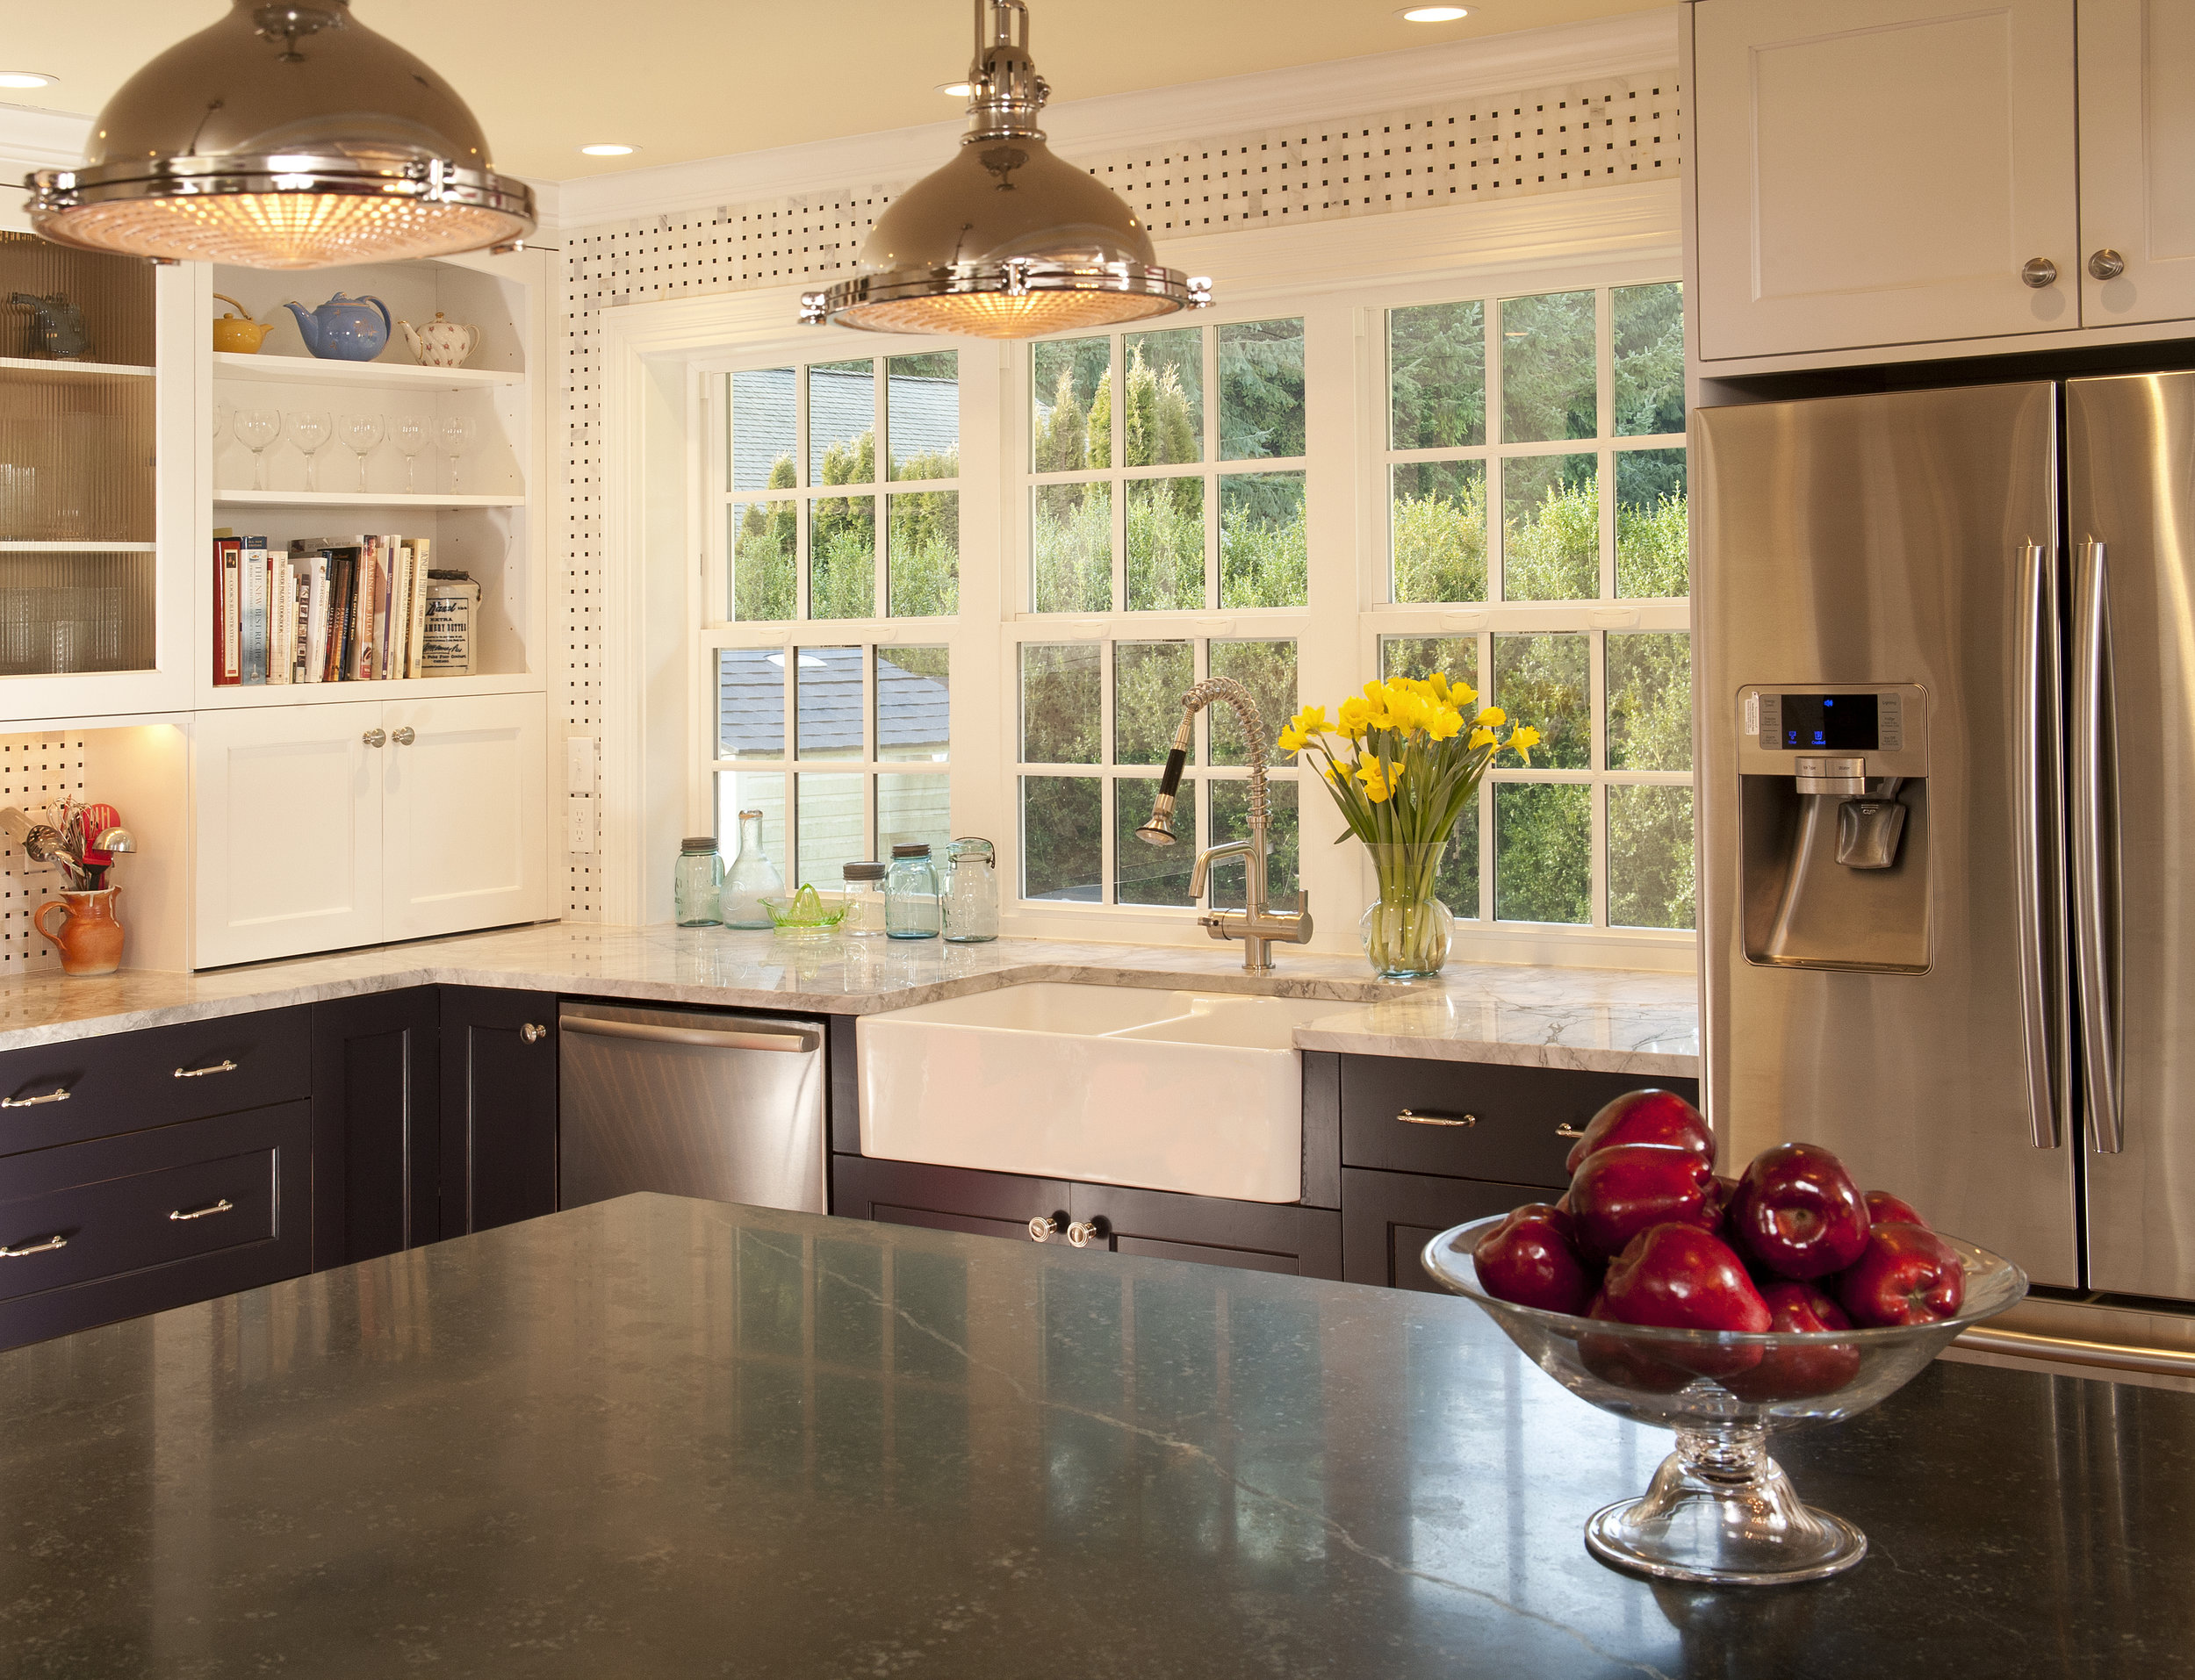 Woodiville Country Kitchen 11.jpg